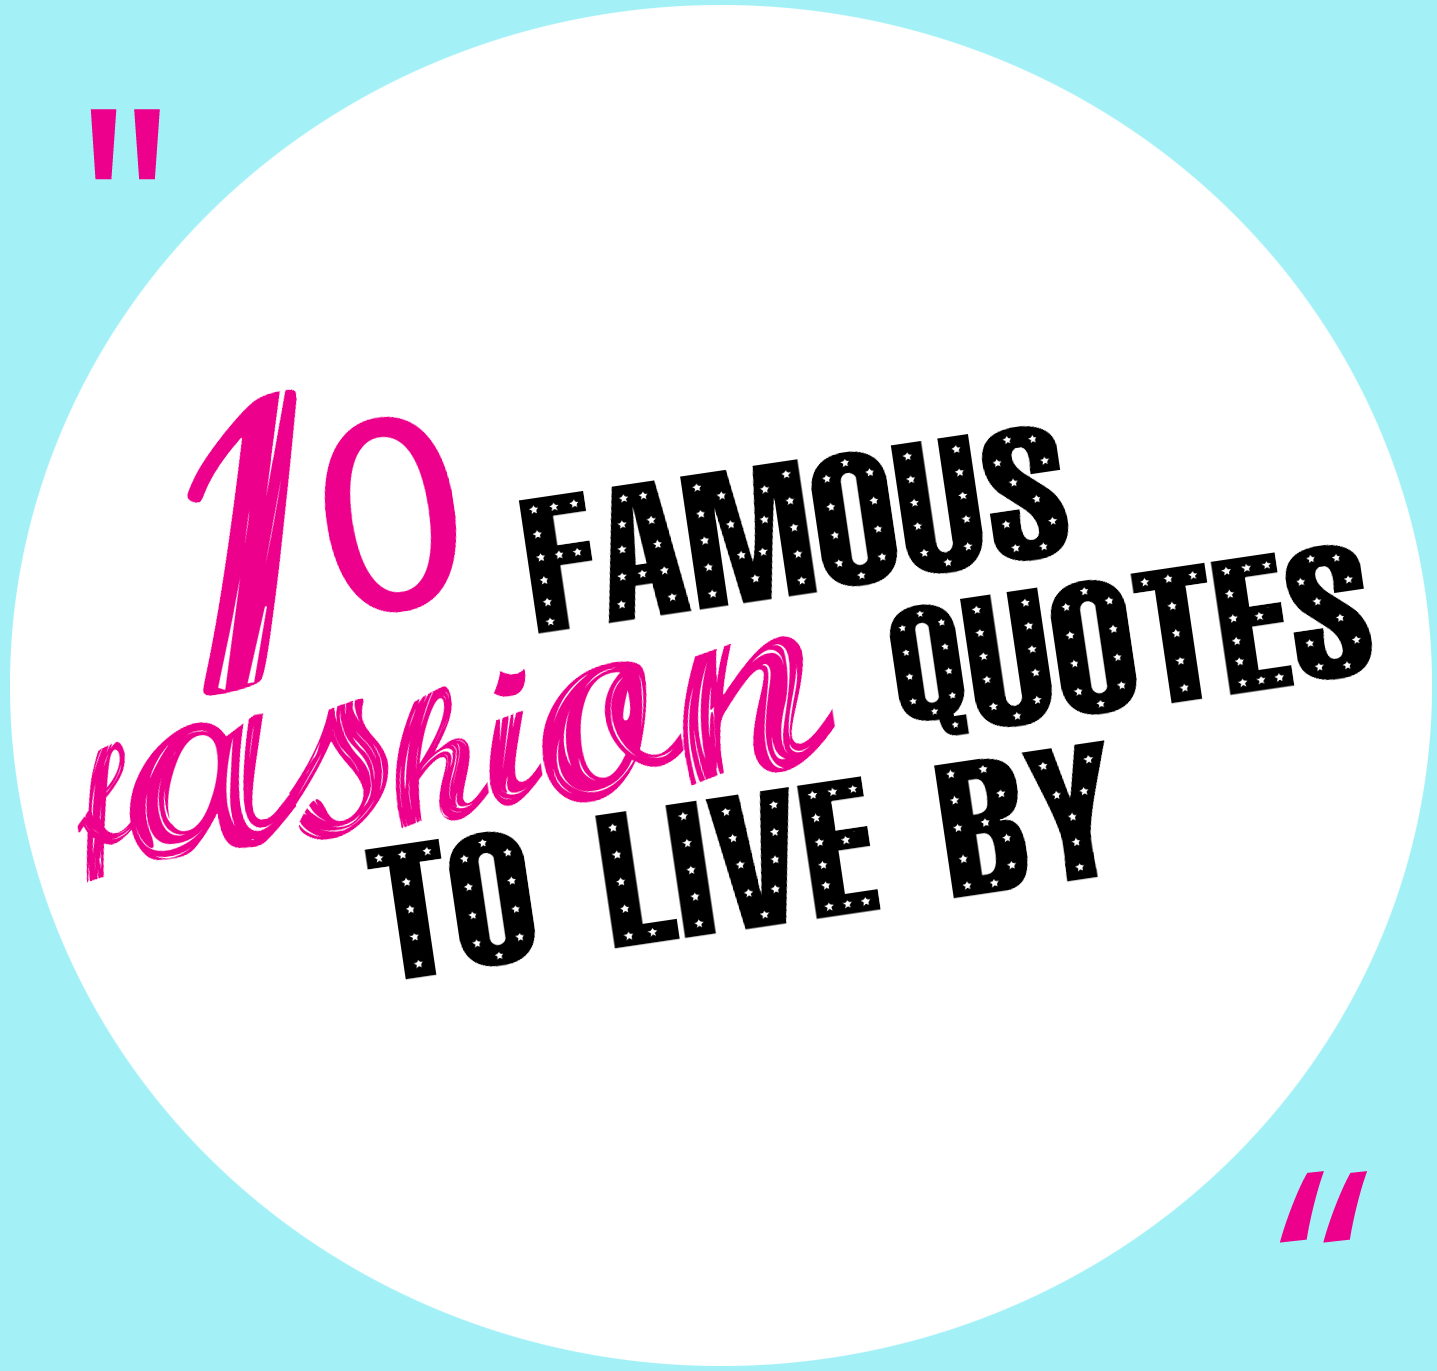 Quotes To Live By: Motivation For Monday: 10 Famous Fashion Quotes To Live By